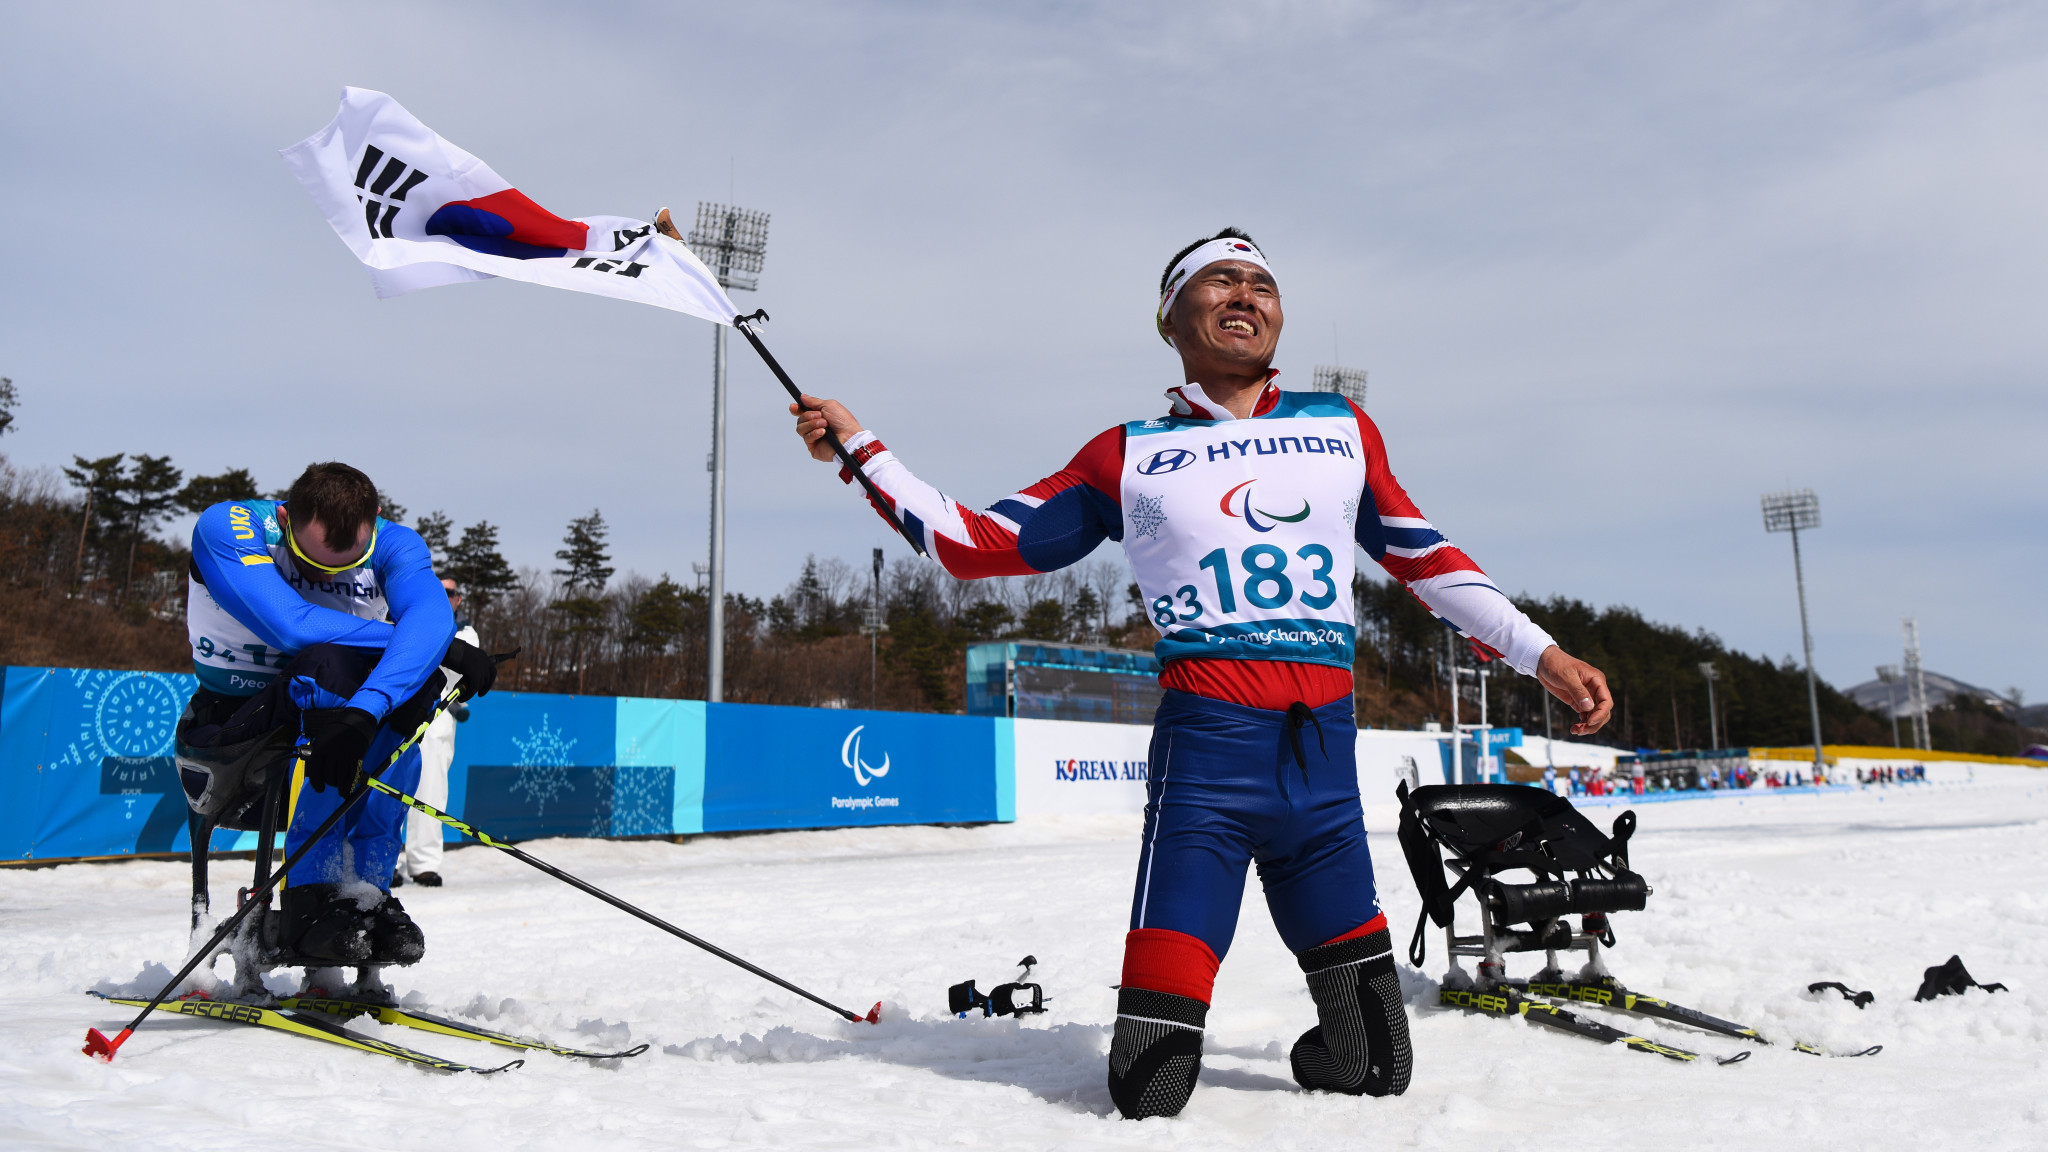 Cross-country skiing gold medallist named South Korea's flagbearer for Pyeongchang 2018 Paralympics Closing Ceremony